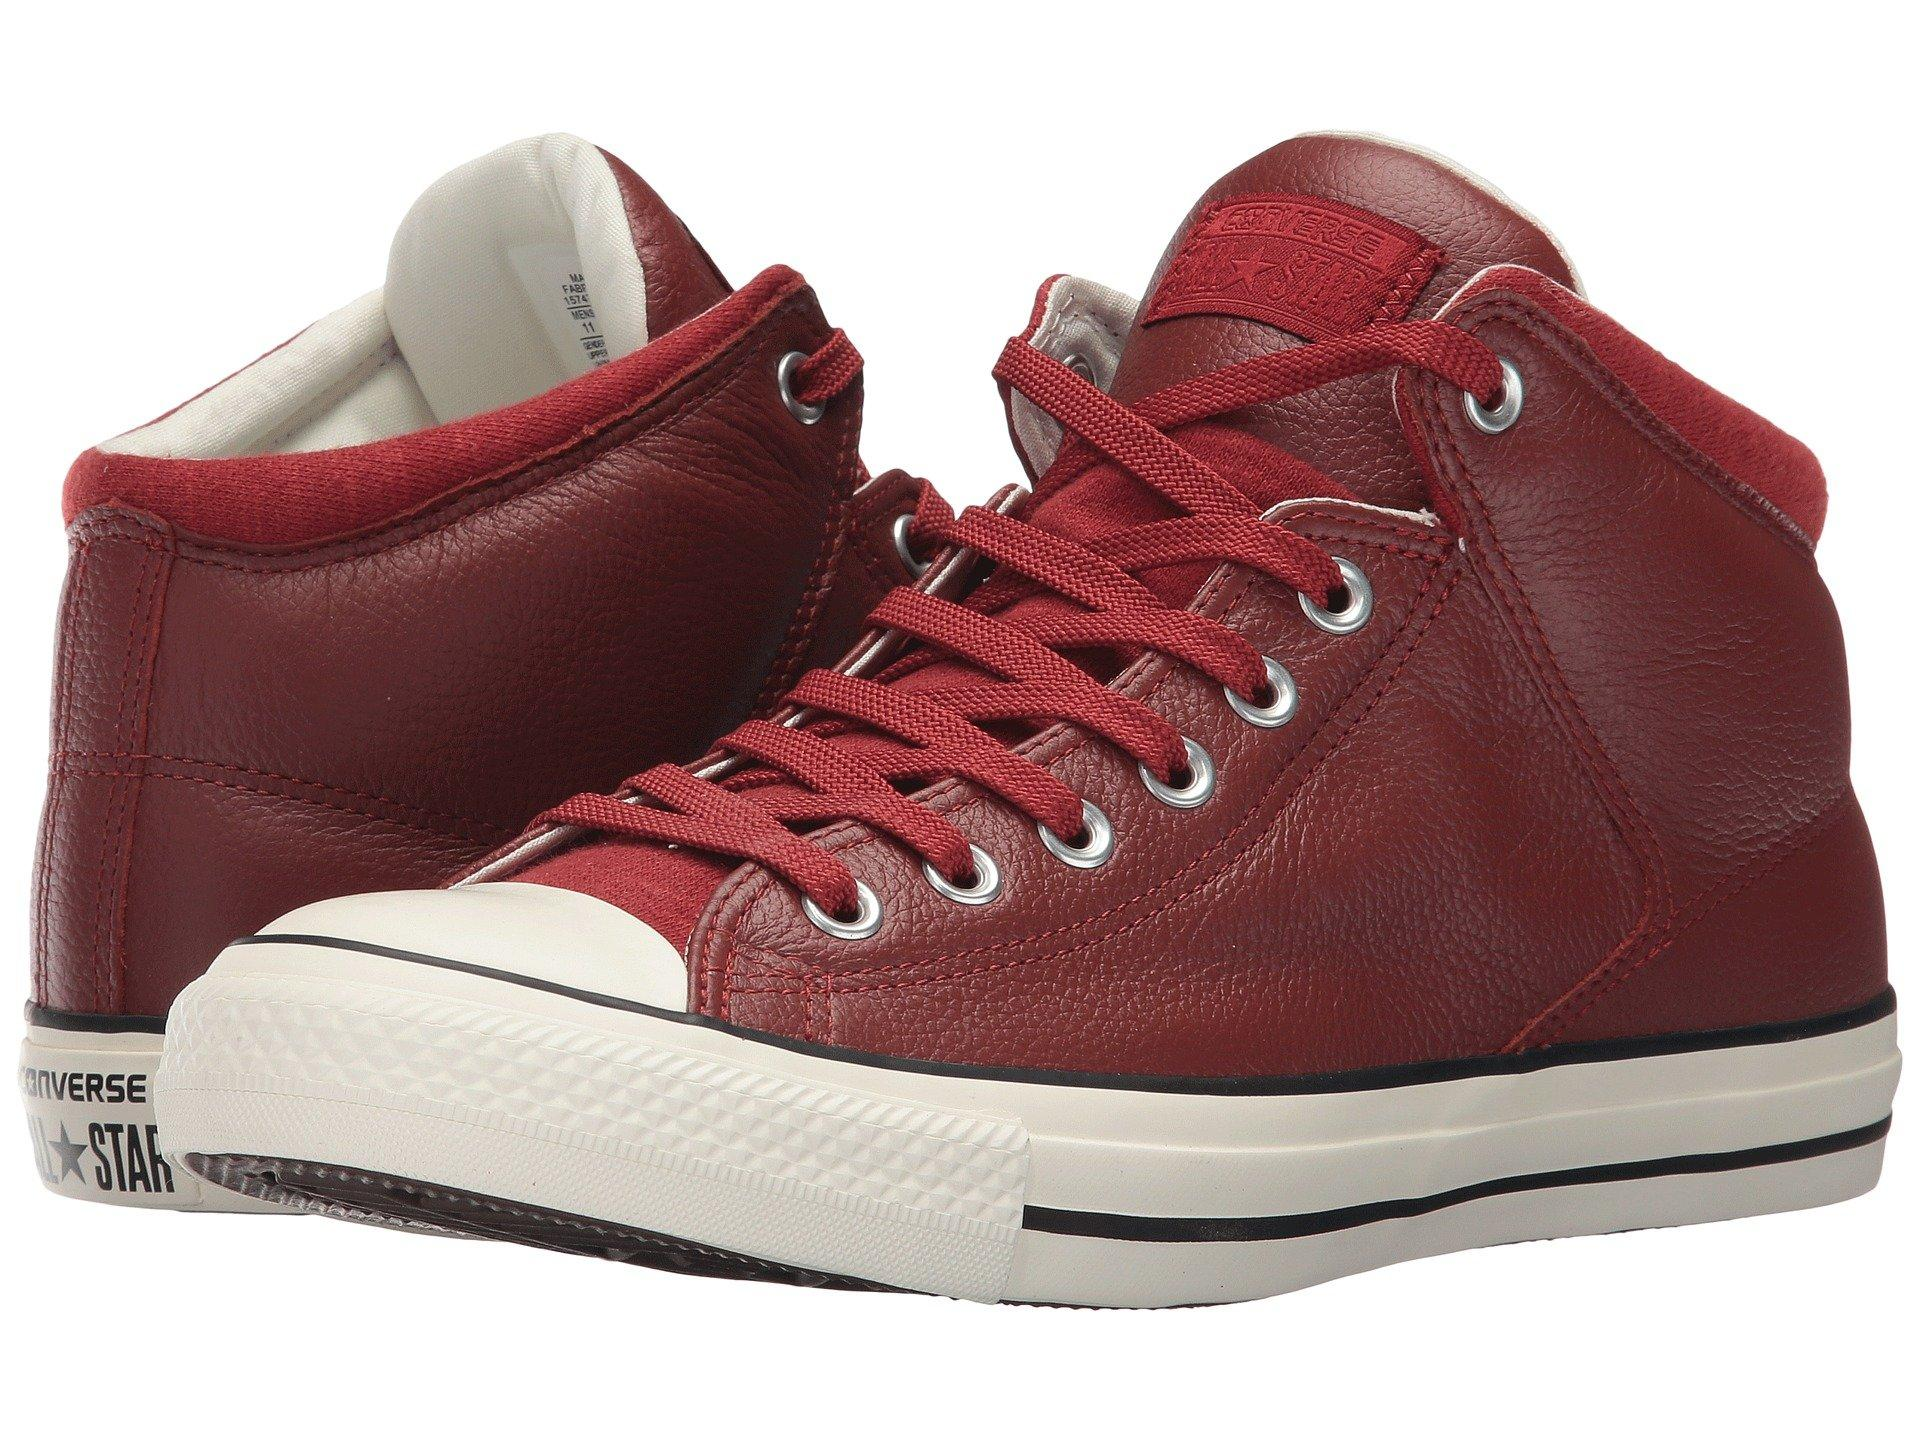 Converse Chuck Taylor All Star Street Hi - Tumbled Leather In Terra Red Terra  Red 143976dda